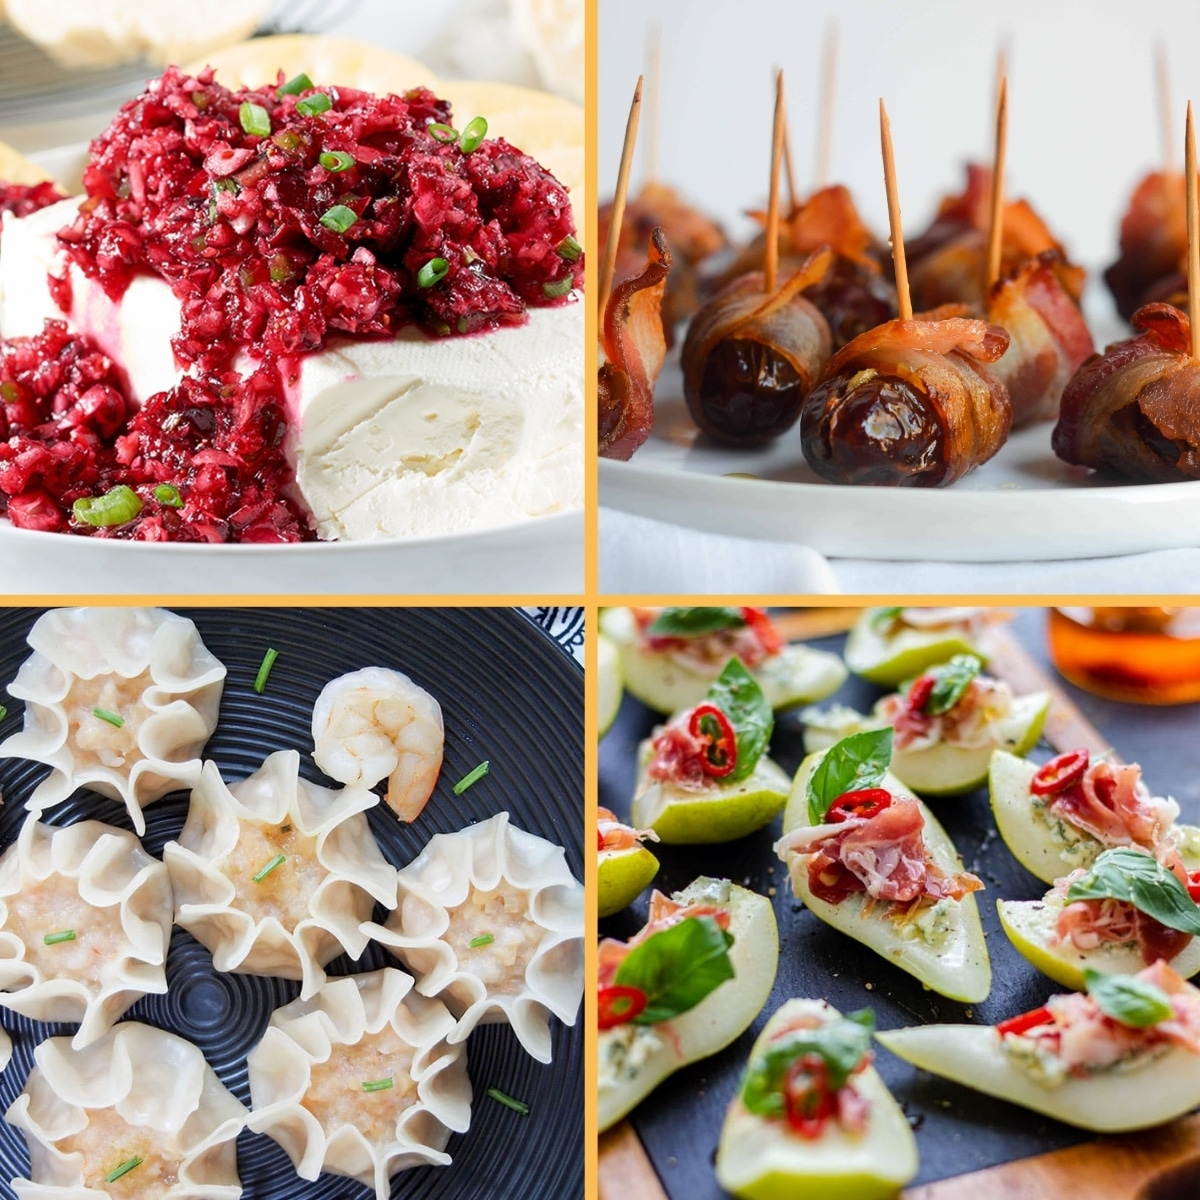 grid of 4 elegant appetizers: jalapeno cranberry spread, bacon wrapped dates, shrimp shumai, and proscuitto pears.